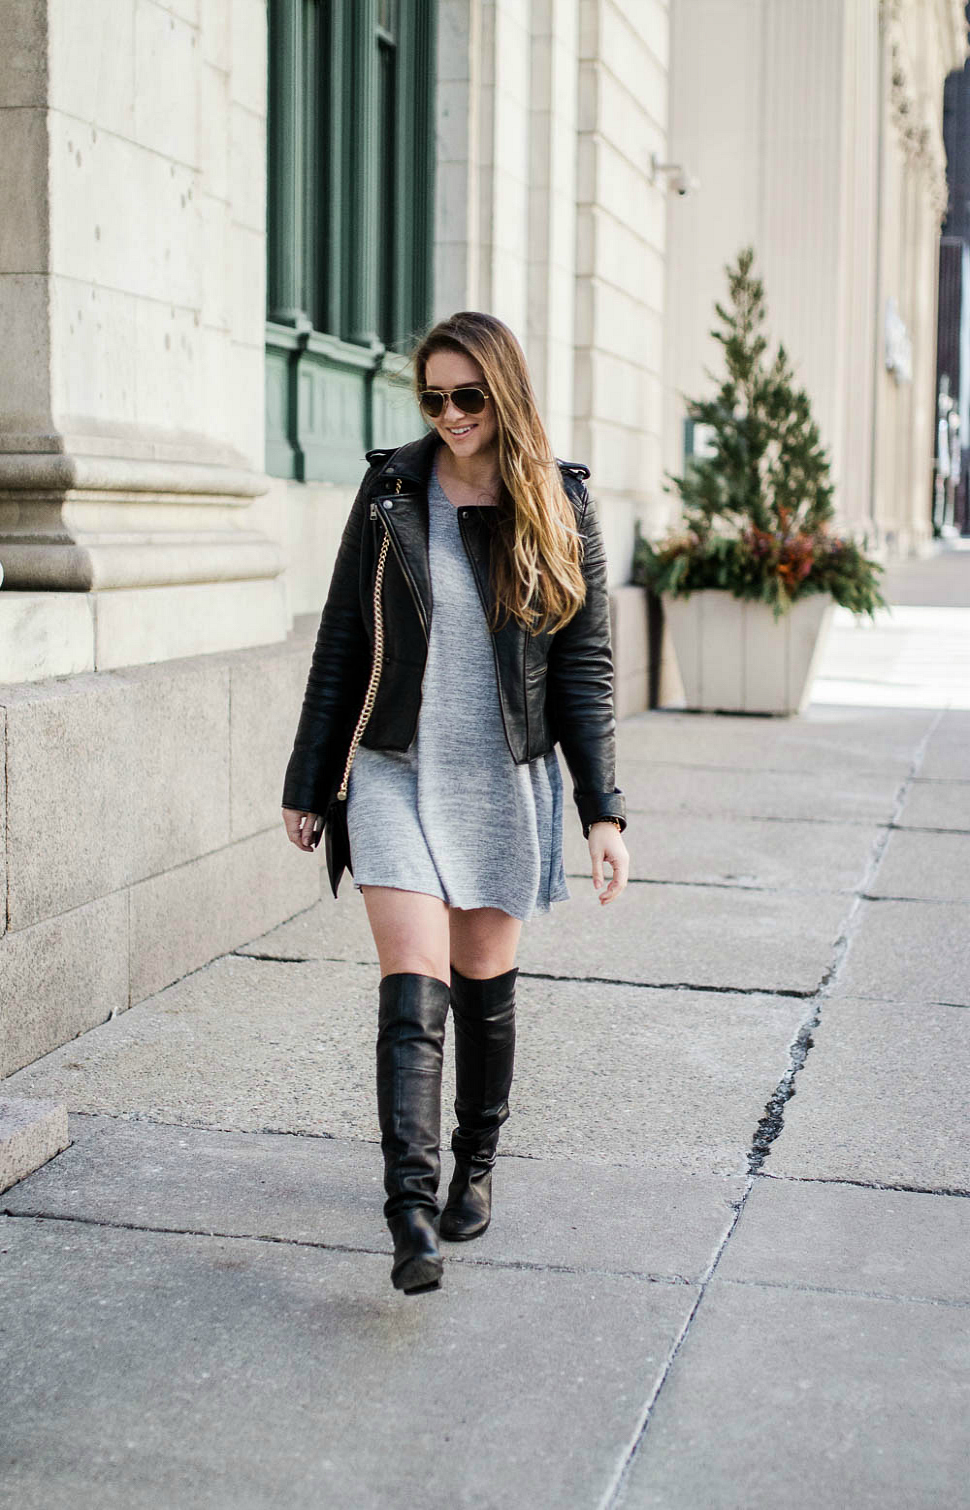 leather-jacket-over-the-knee-boots-ray-ban-canadian-blogger-style-fashion-outfit-rosecitystyleguide-1